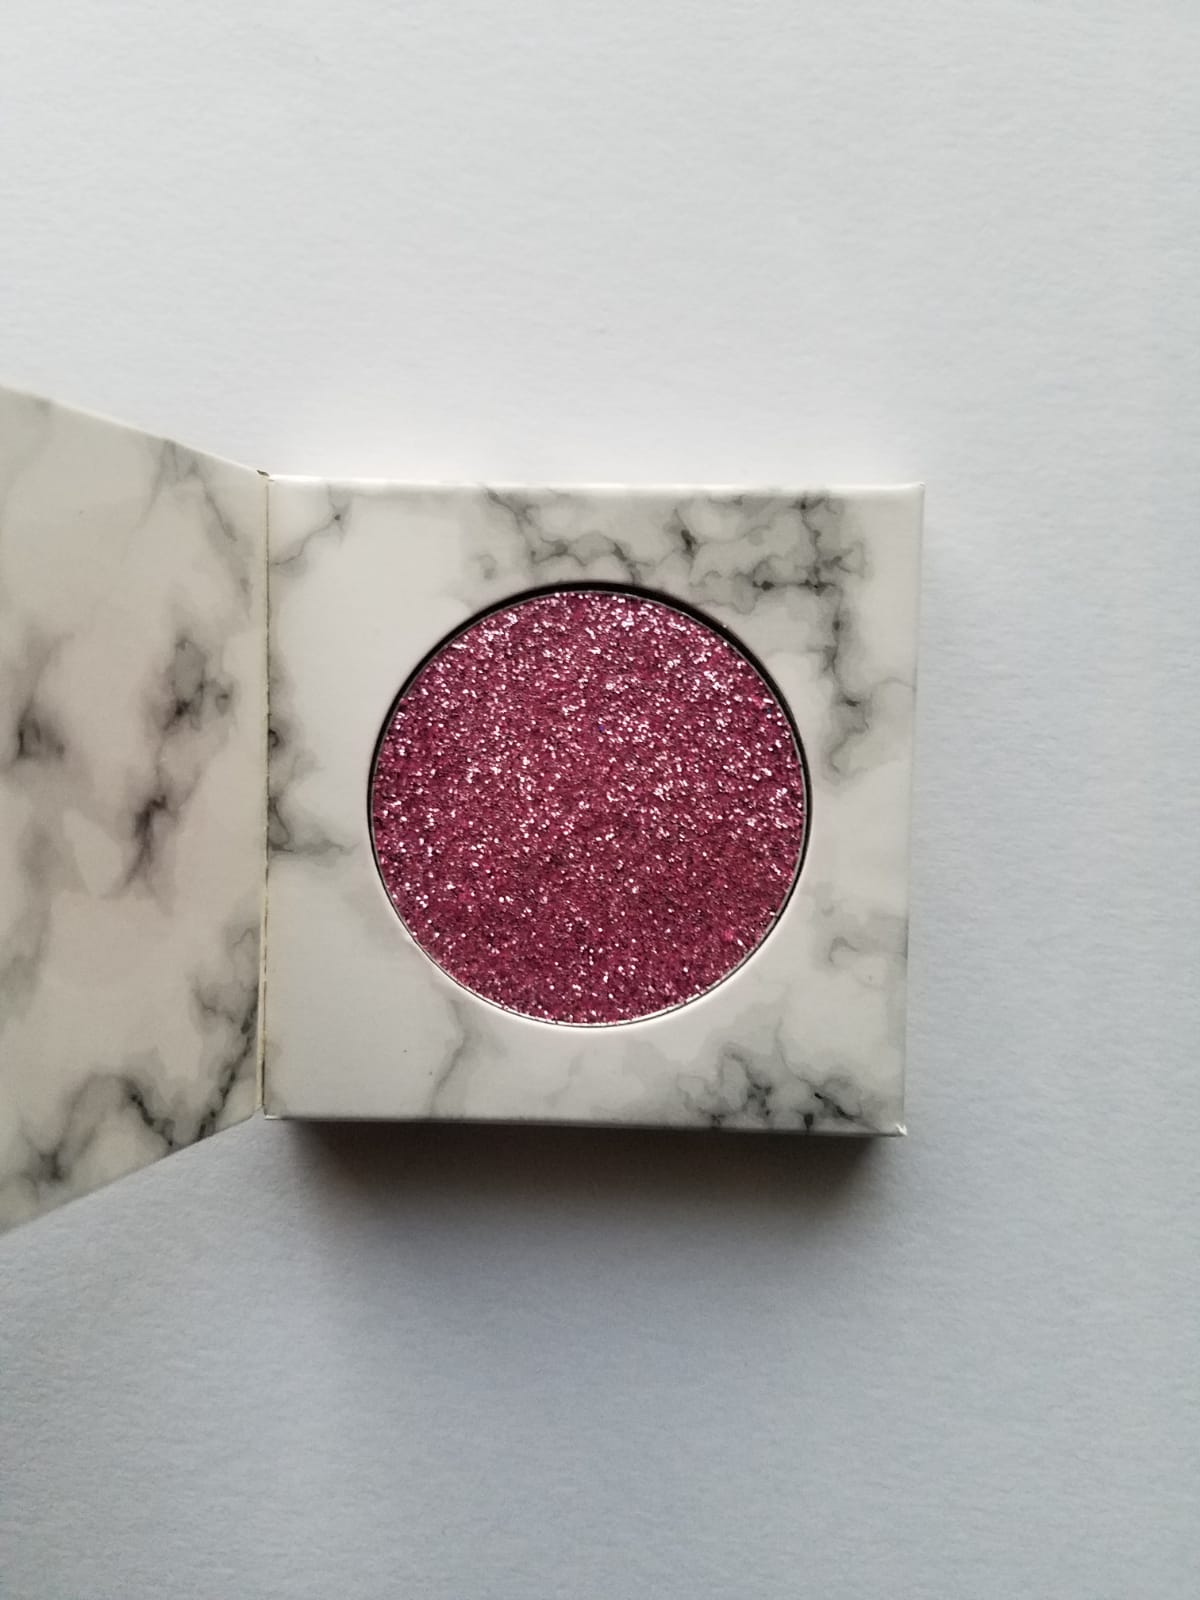 Lilac Glitter Single Eyeshadow